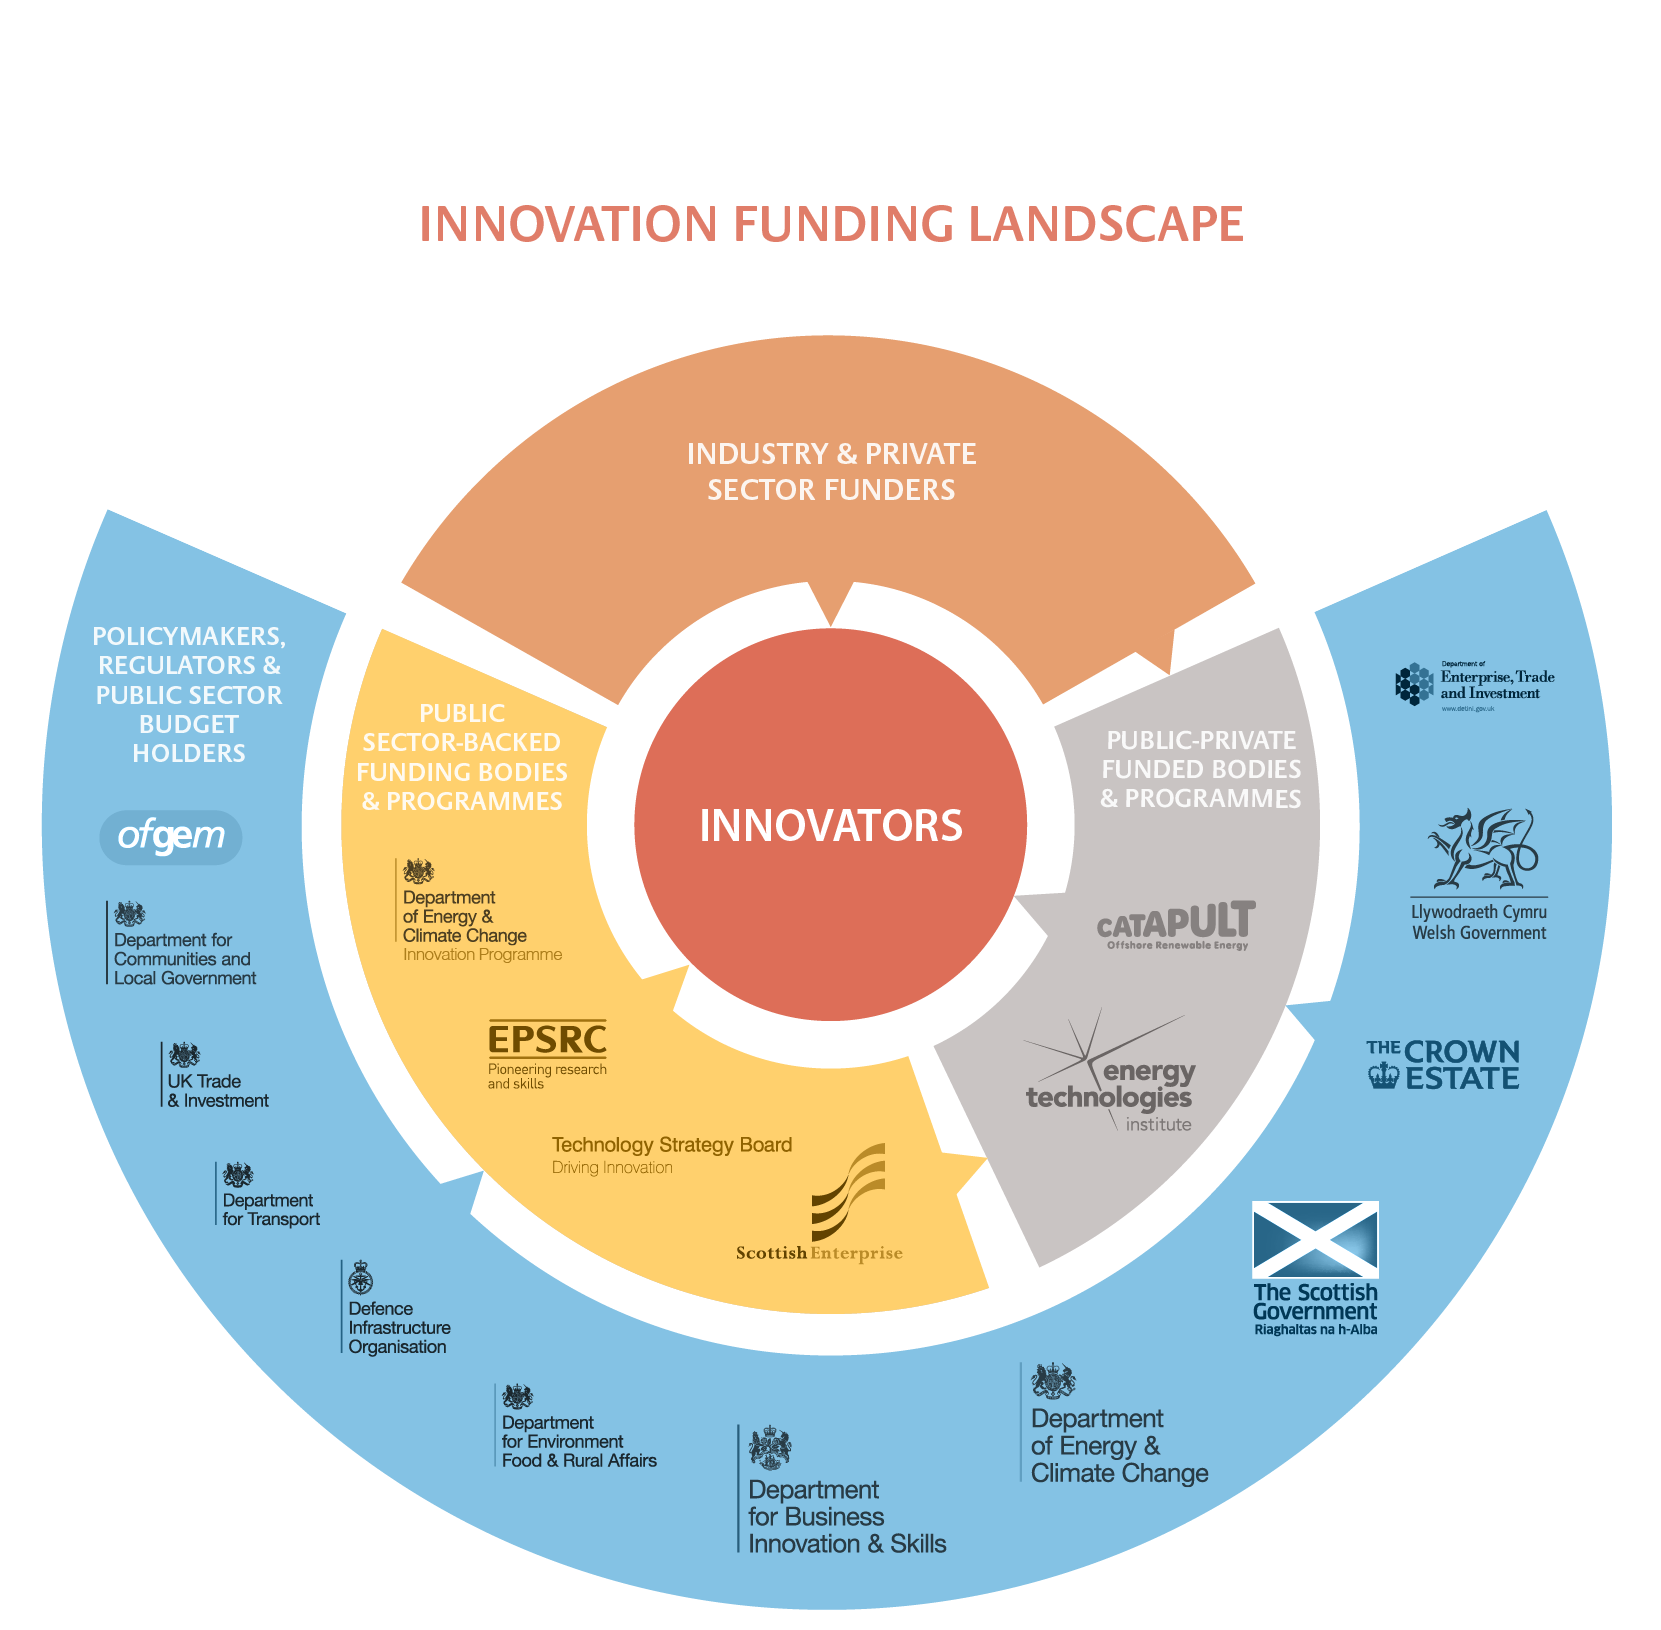 This infographic explained the various sources of funding for innovation - for ETI